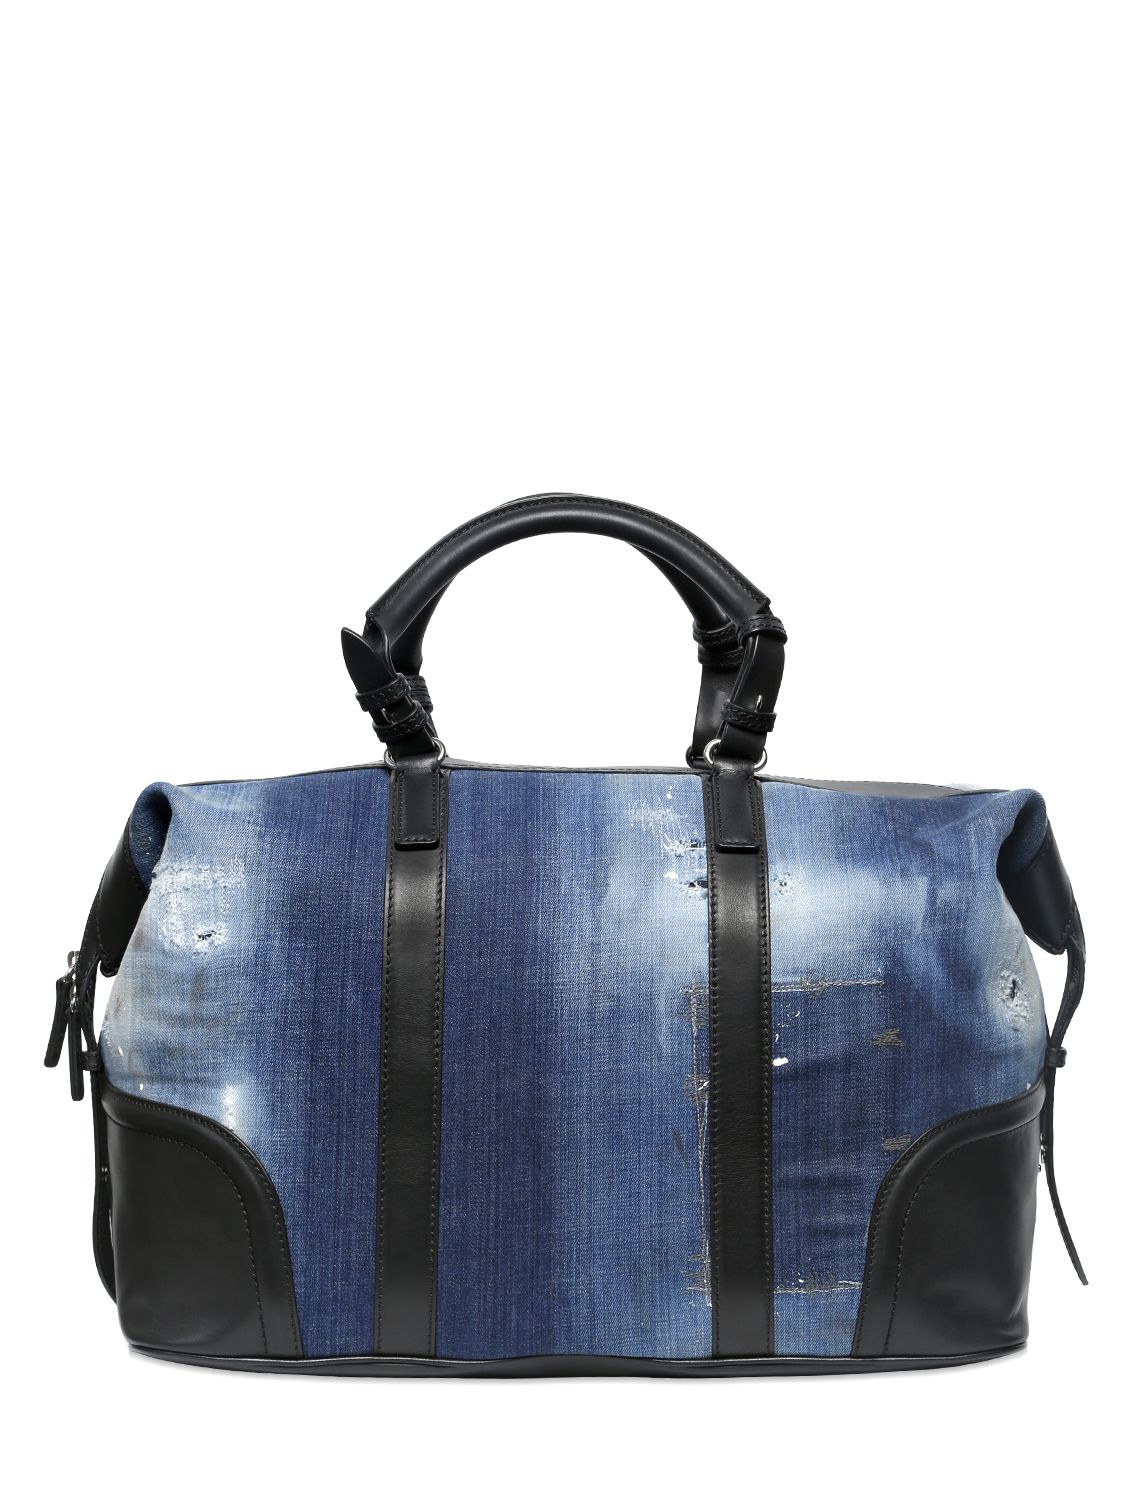 dsquared 178 denim and leather duffle bag in blue for lyst